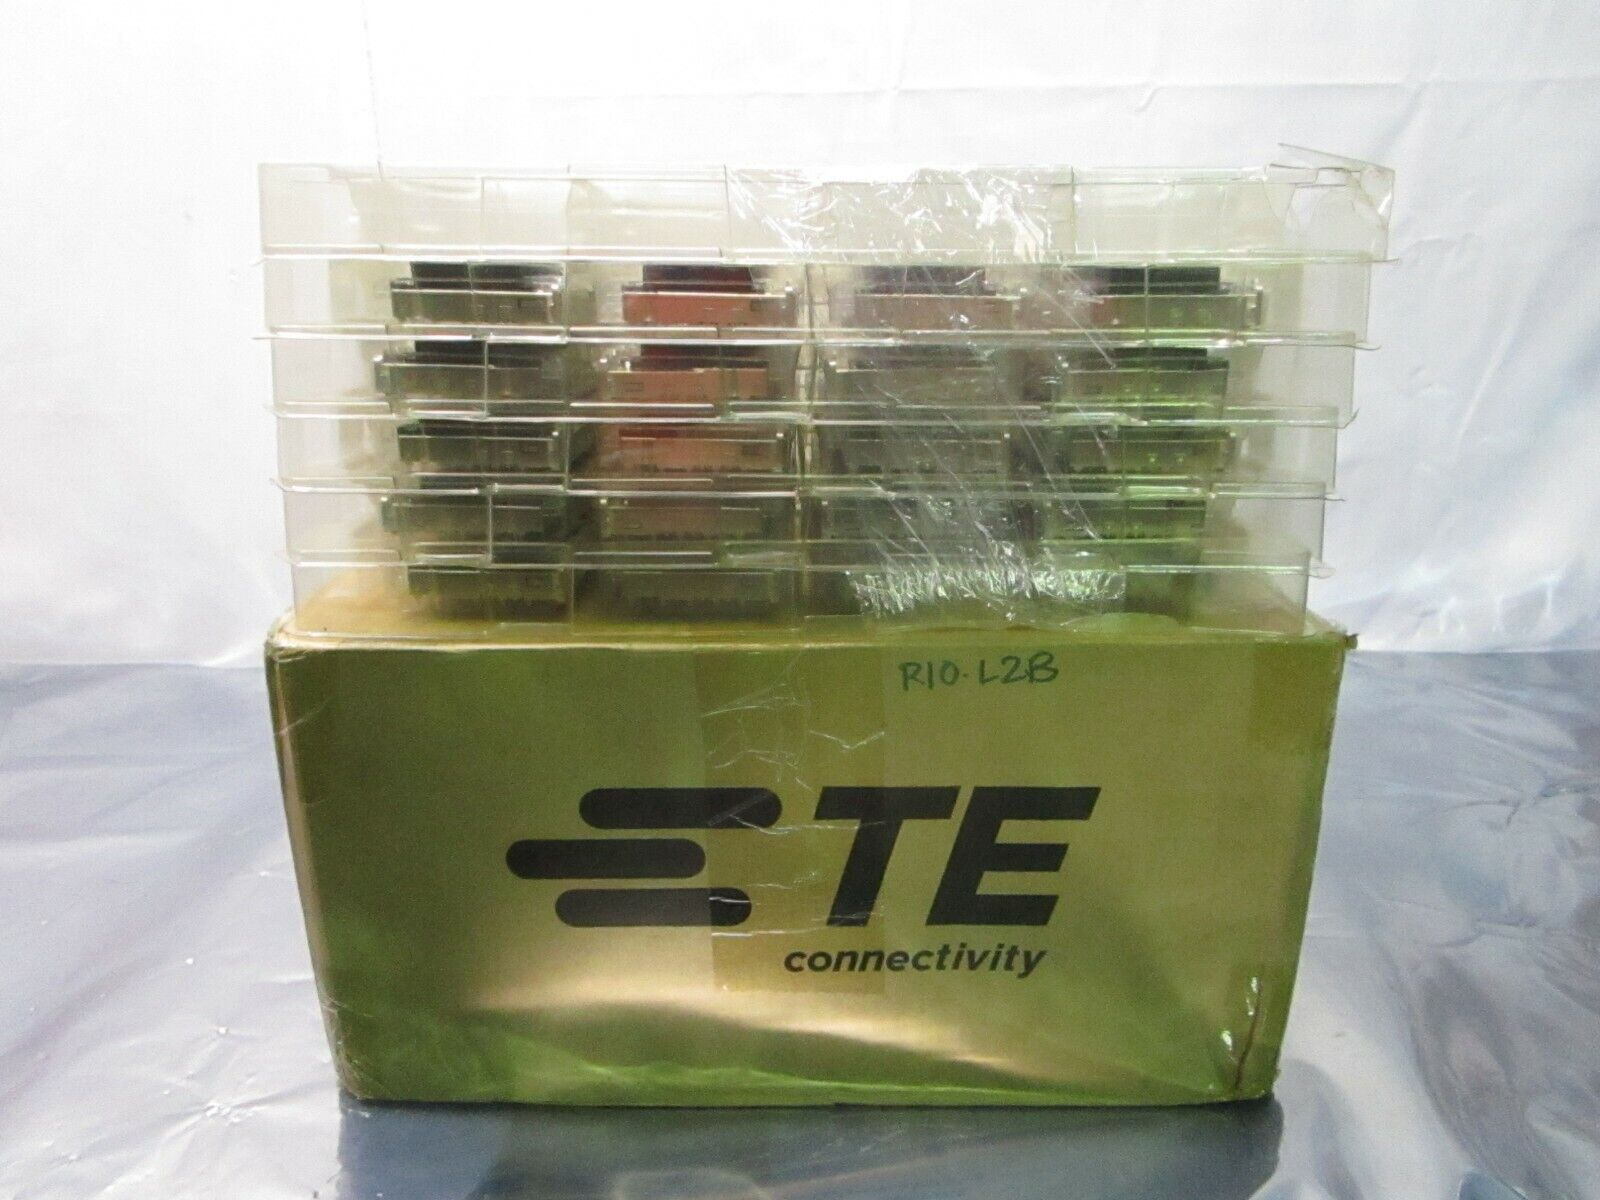 1 Lot of 40 TE connectivity AMP Brand 2170551-1 1X6 CAGE ASSEMBLY, 102554